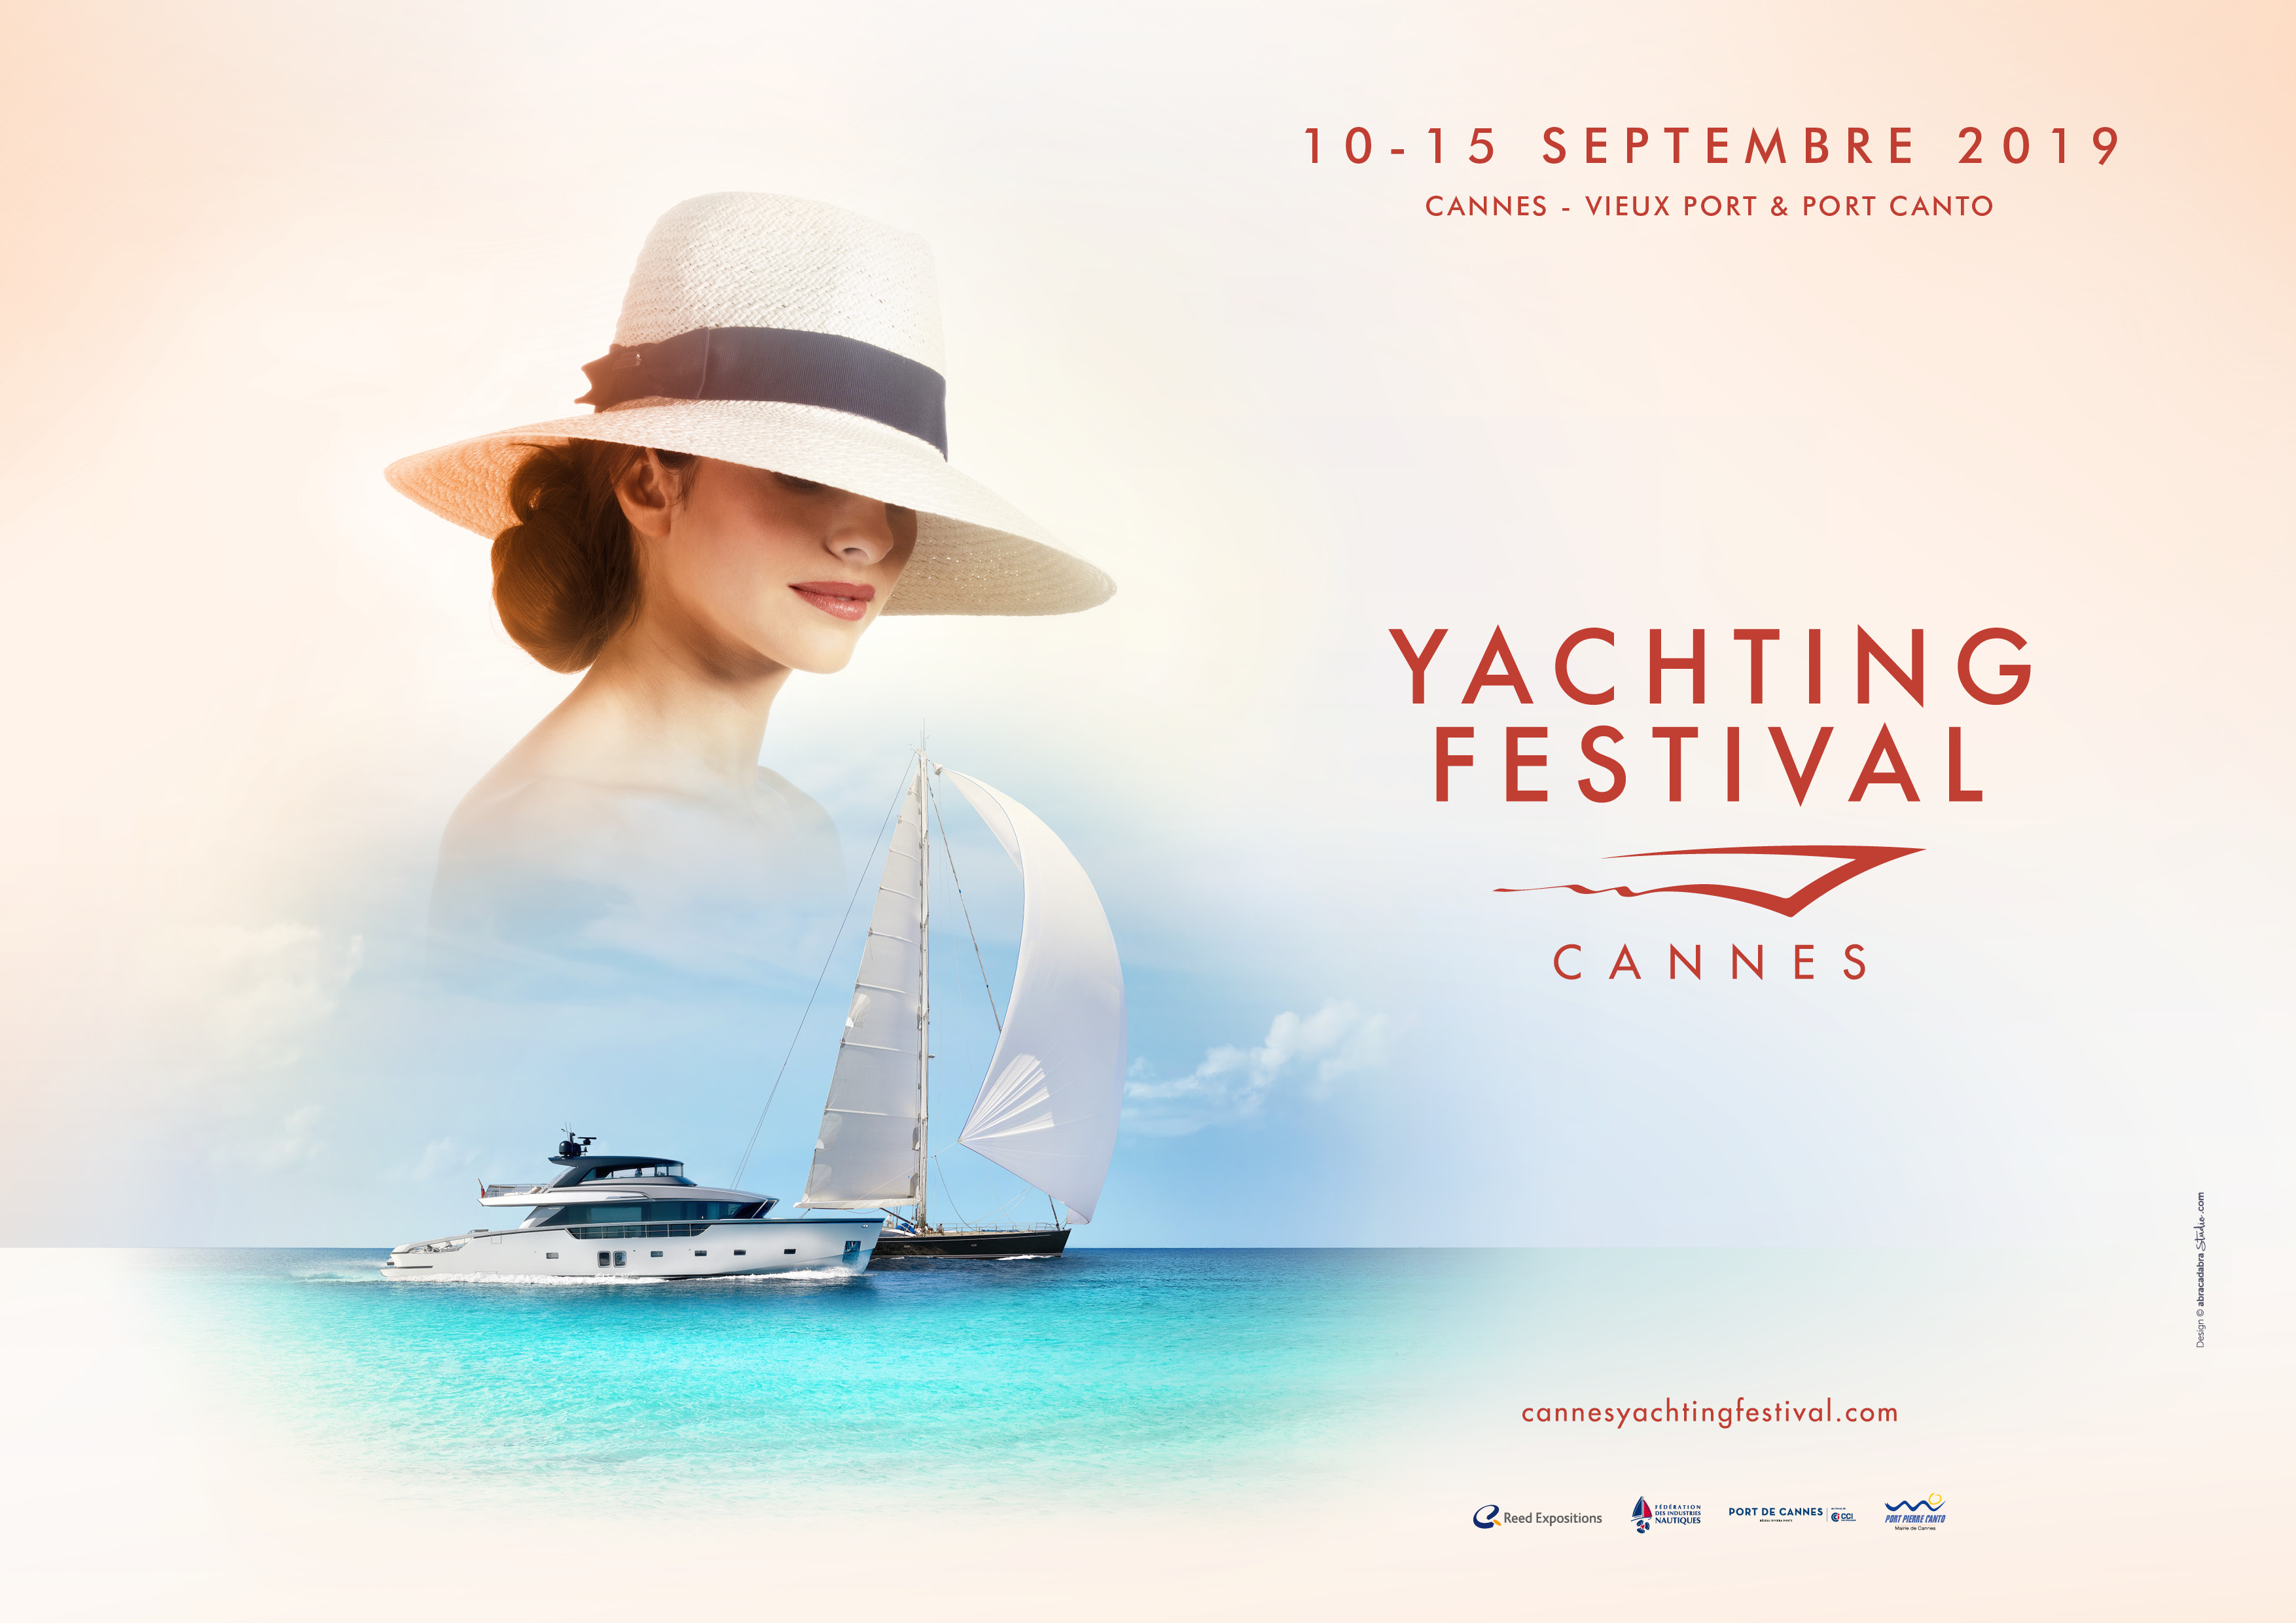 42° Cannes Yachting Festival